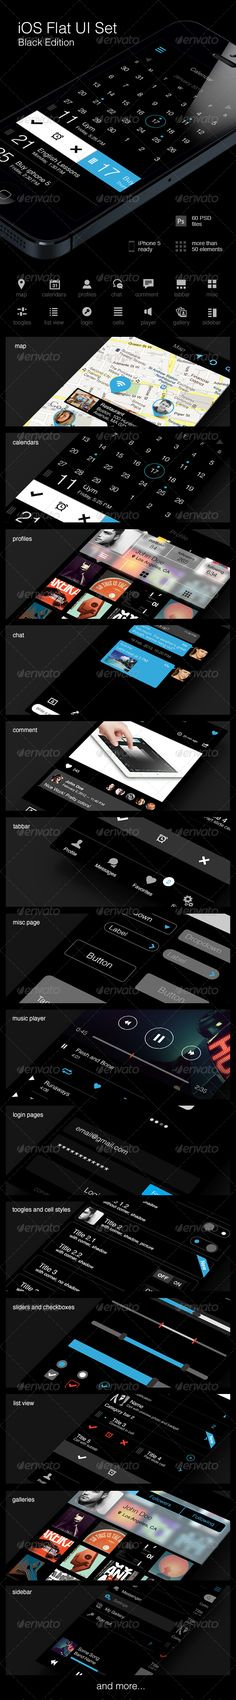 iOS Flat UI Set Black Edition